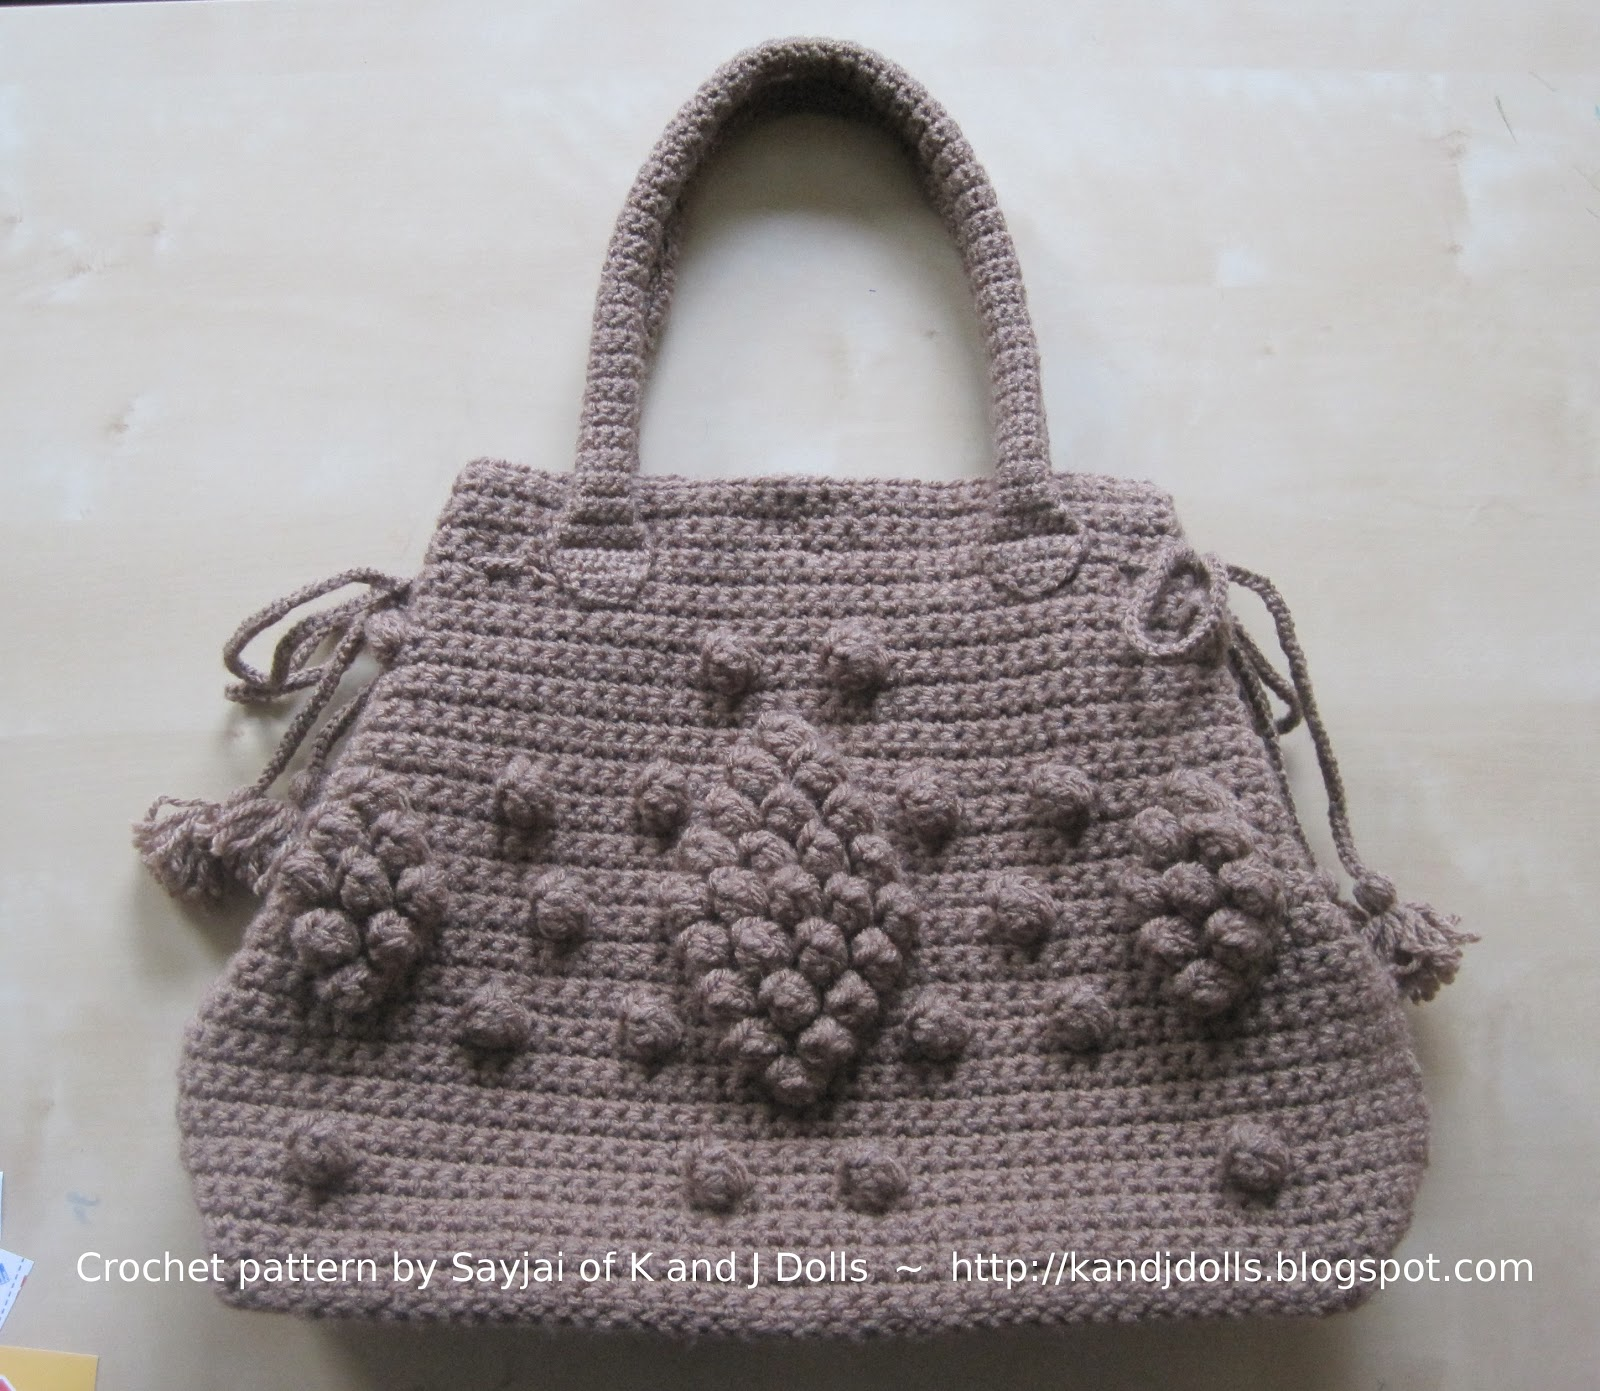 Crochet Bags And Purses Free Patterns : Taupe Bag crochet pattern - Sayjai Amigurumi Crochet Patterns ~ K and ...